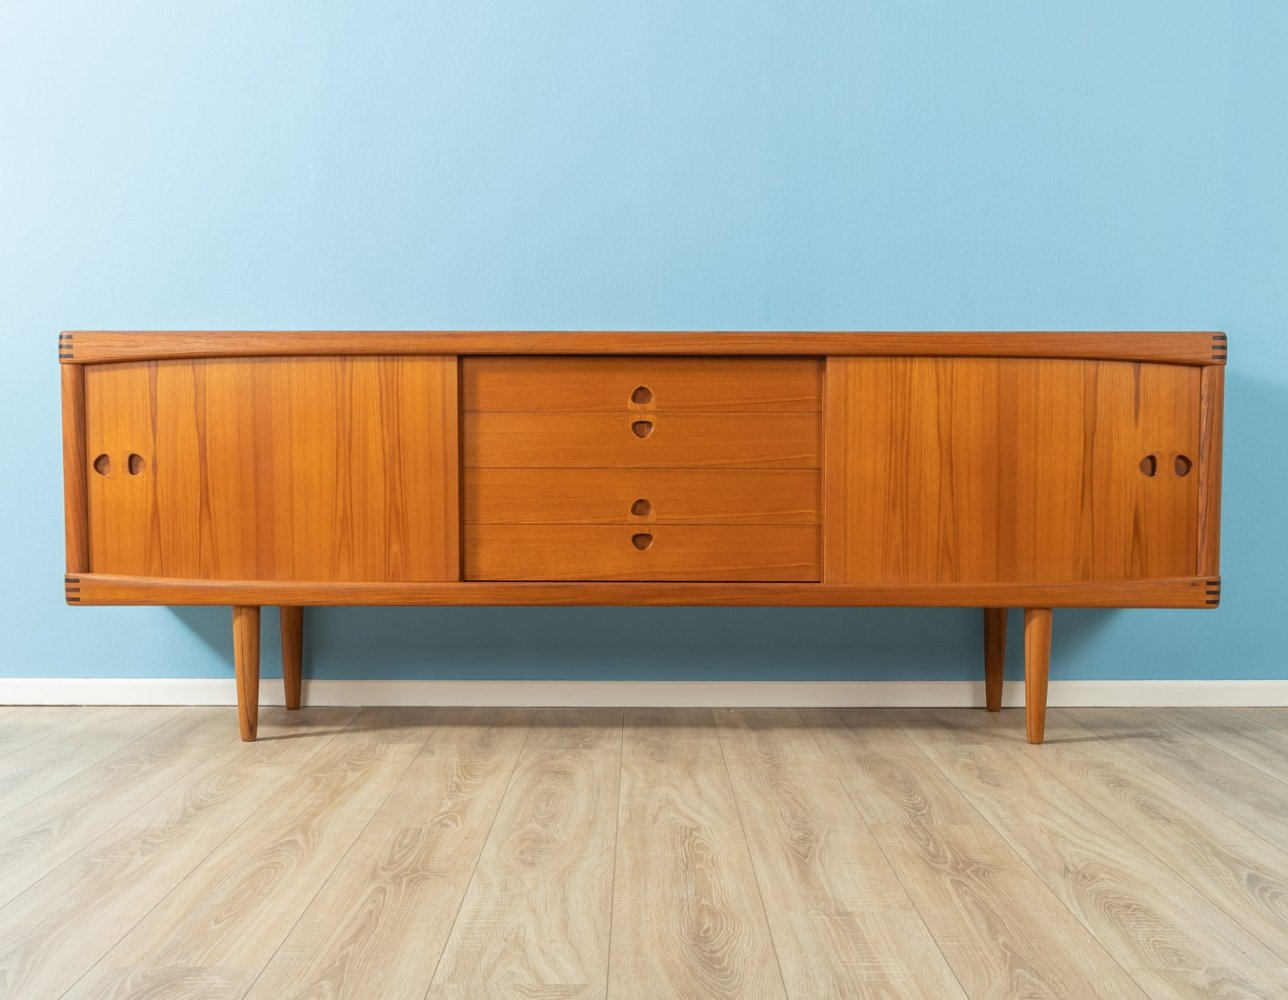 1960s sideboard by Bramin